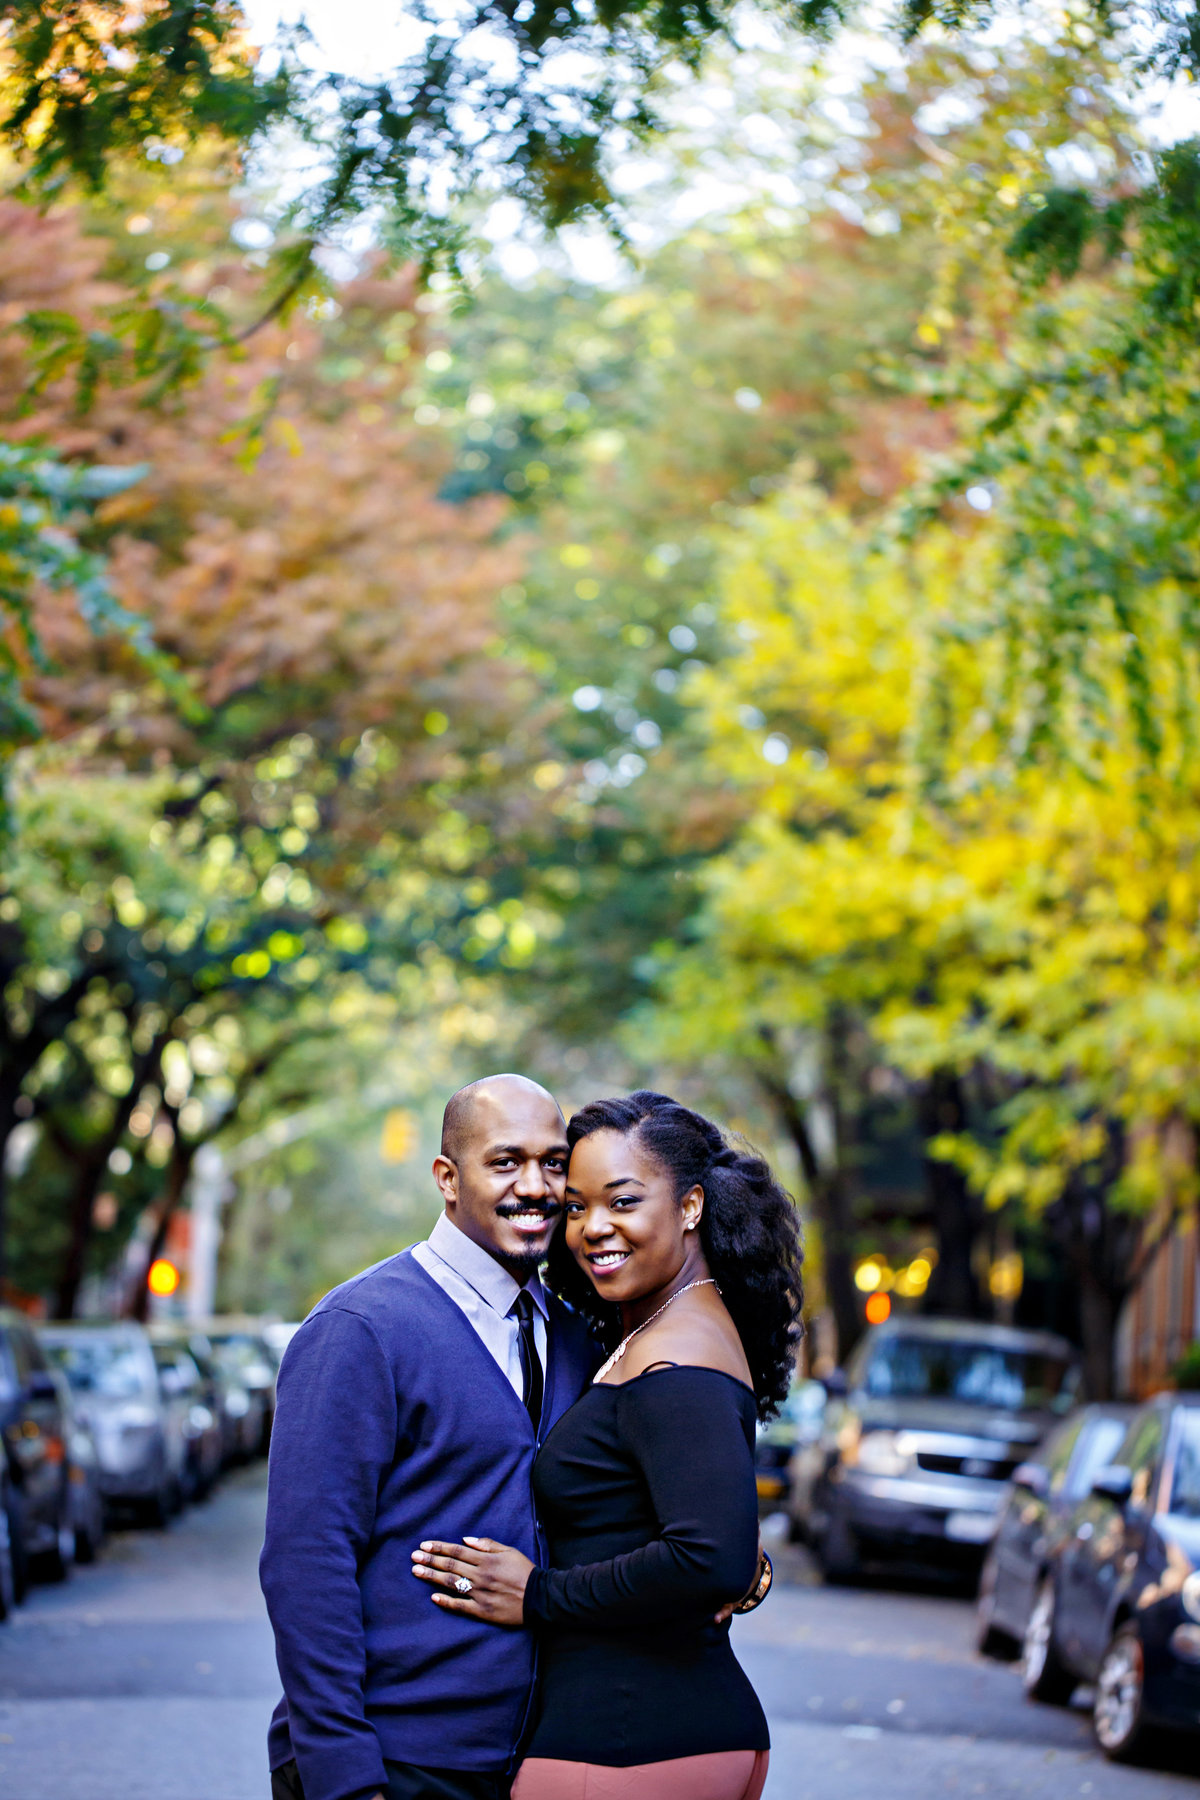 AmyAnaiz_Brooklyn_Bridge_Dumbo_Engagement_New_York_009